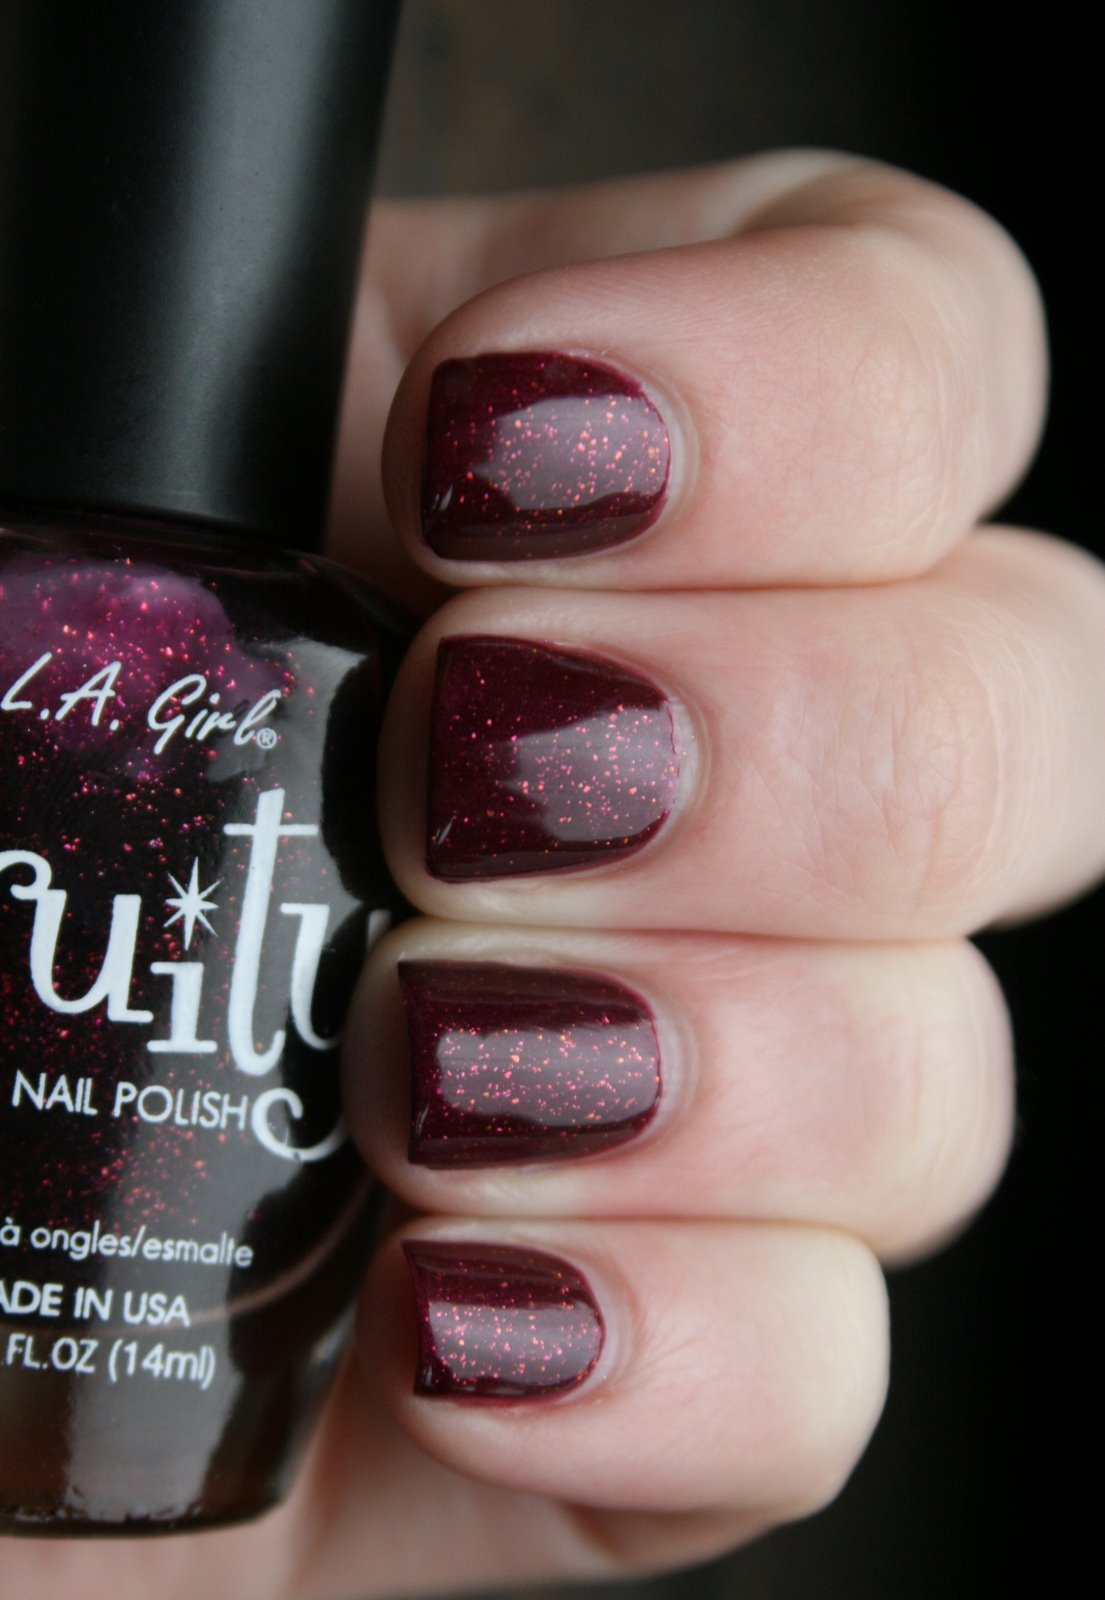 LA Girl Fruity Blissful Blackberry swatch